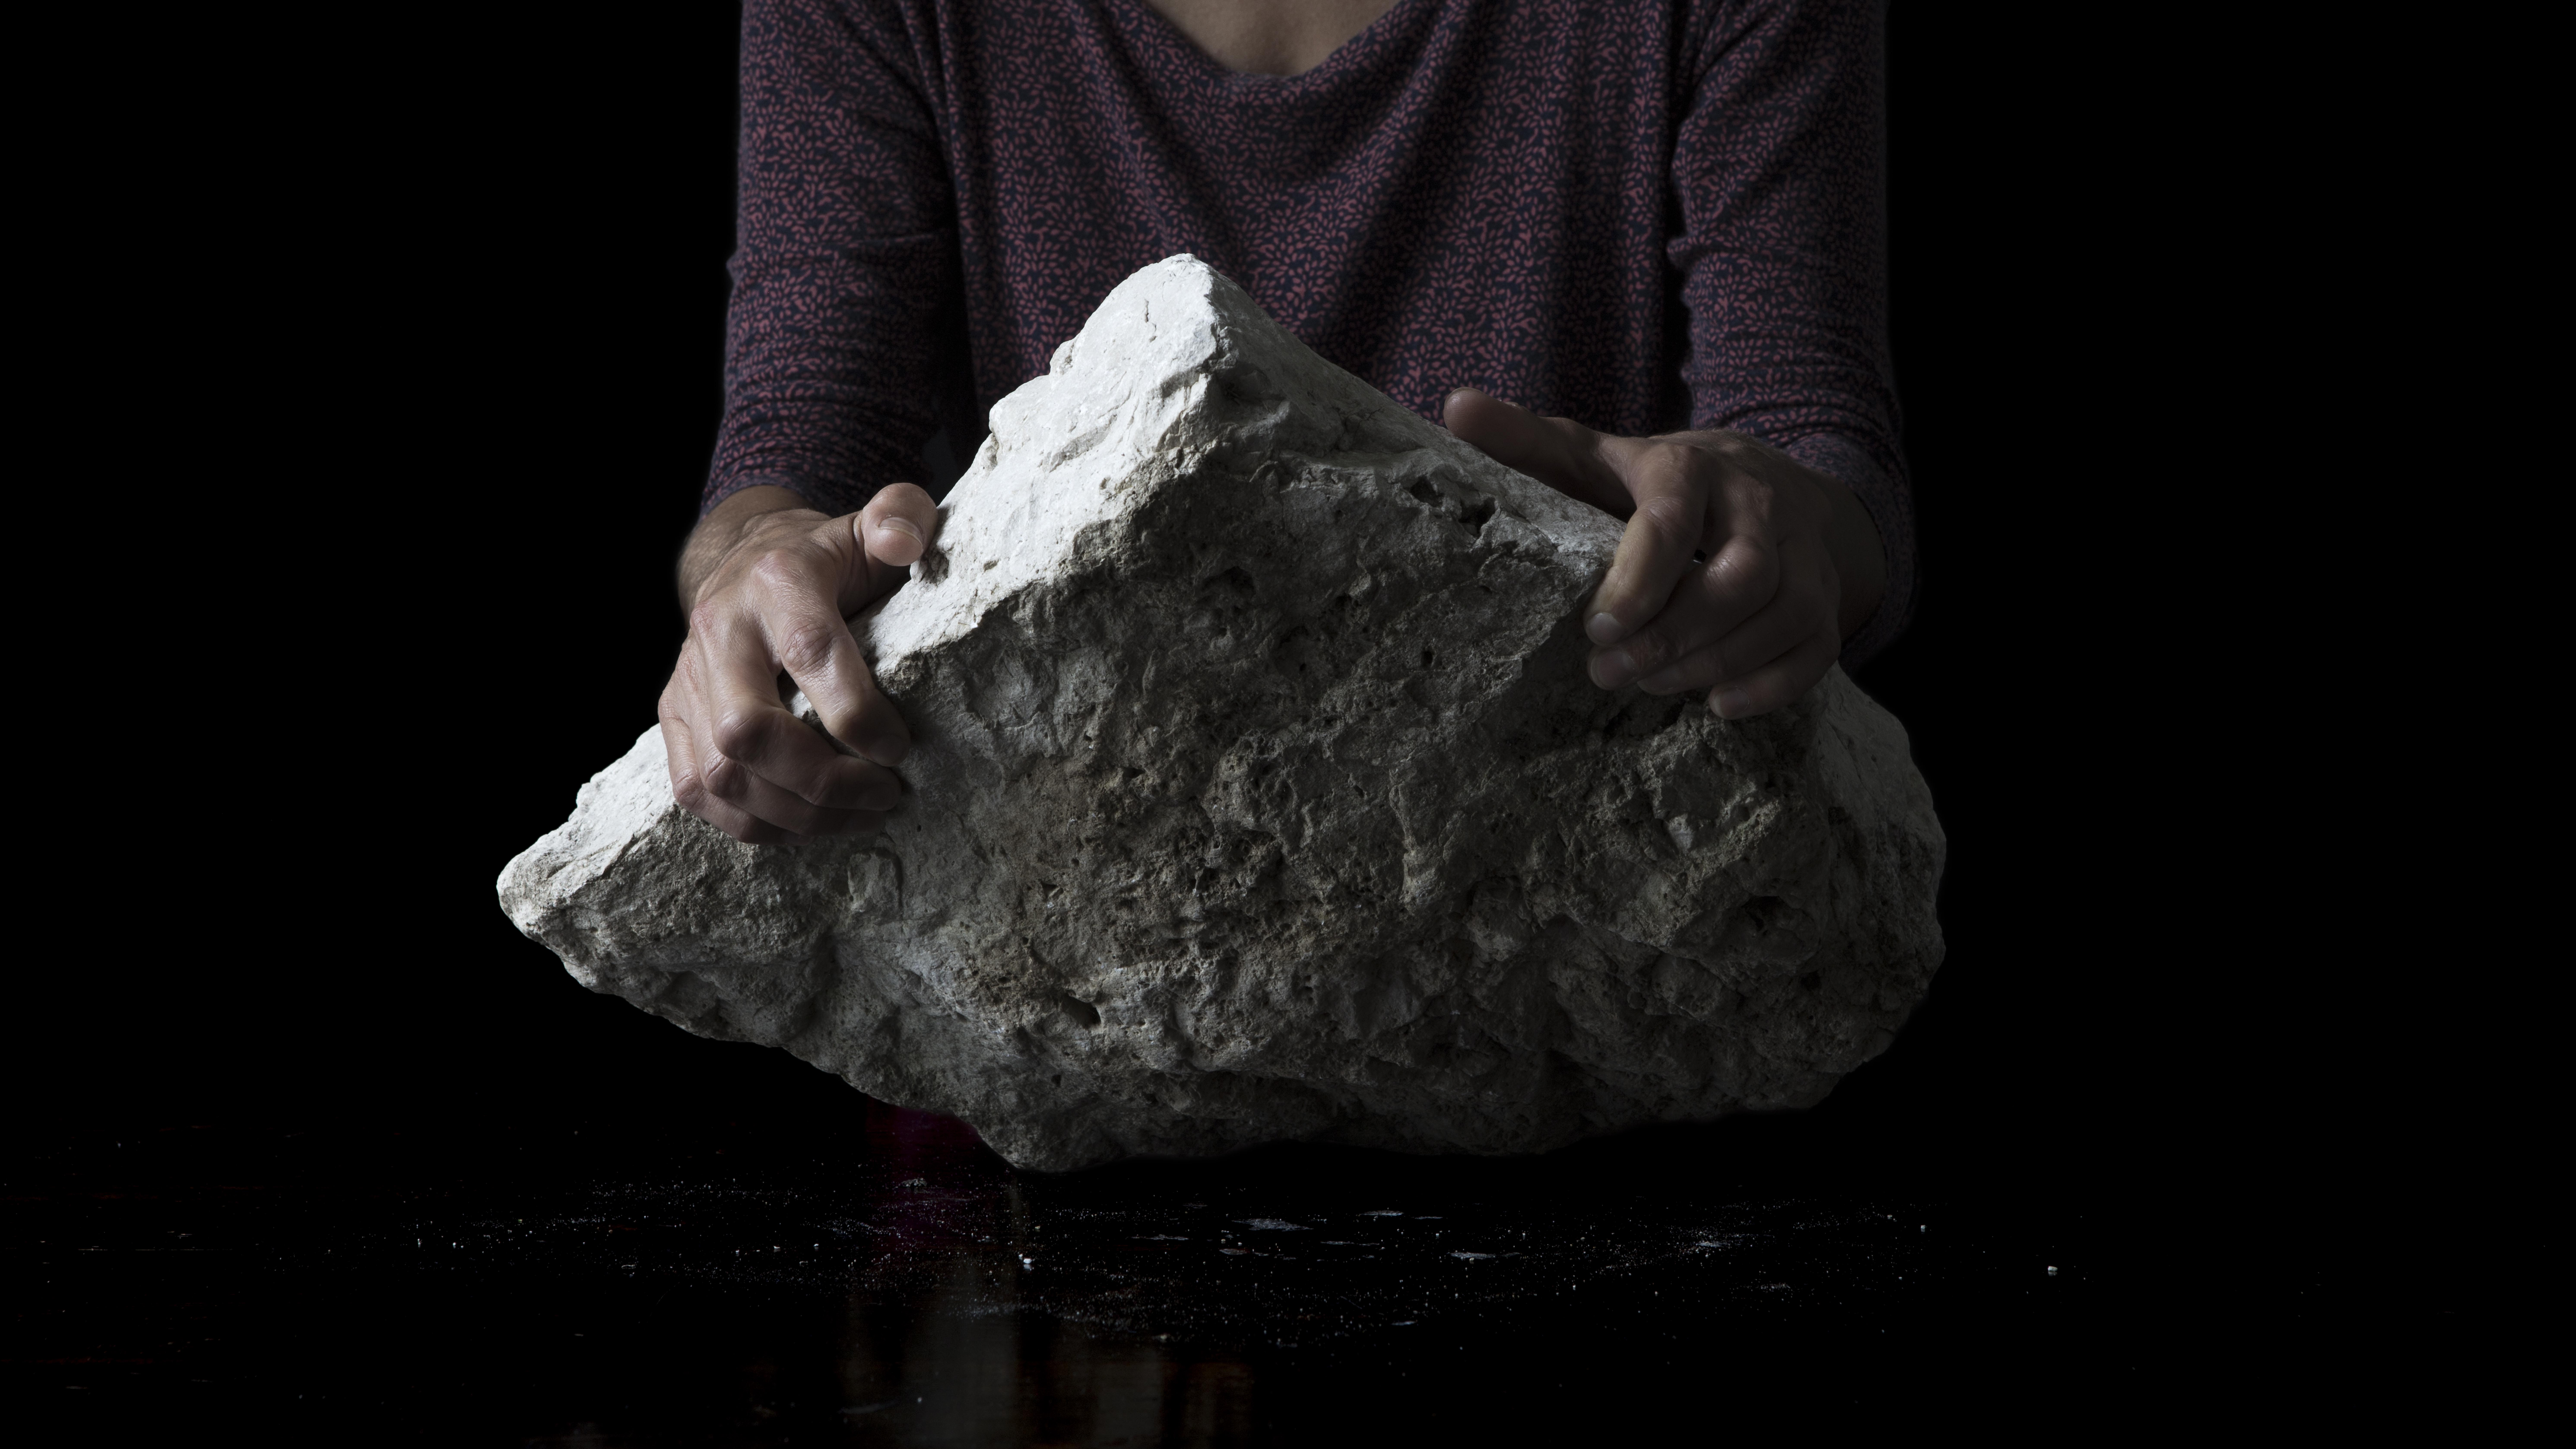 Karin_Schmuck_untitled_rock_I